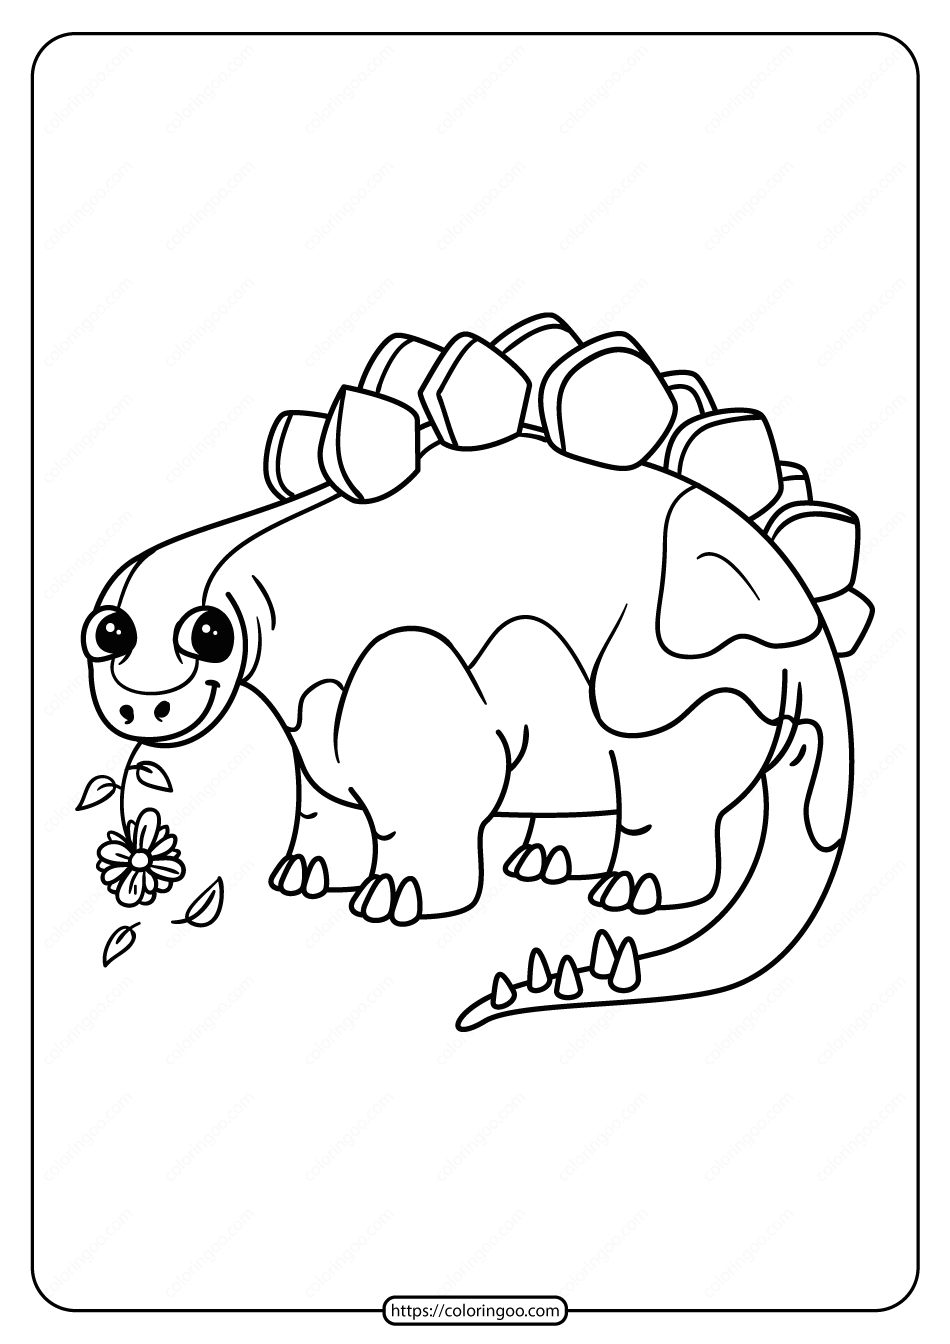 Free Printable Animals Dinosaur Coloring Pages 20